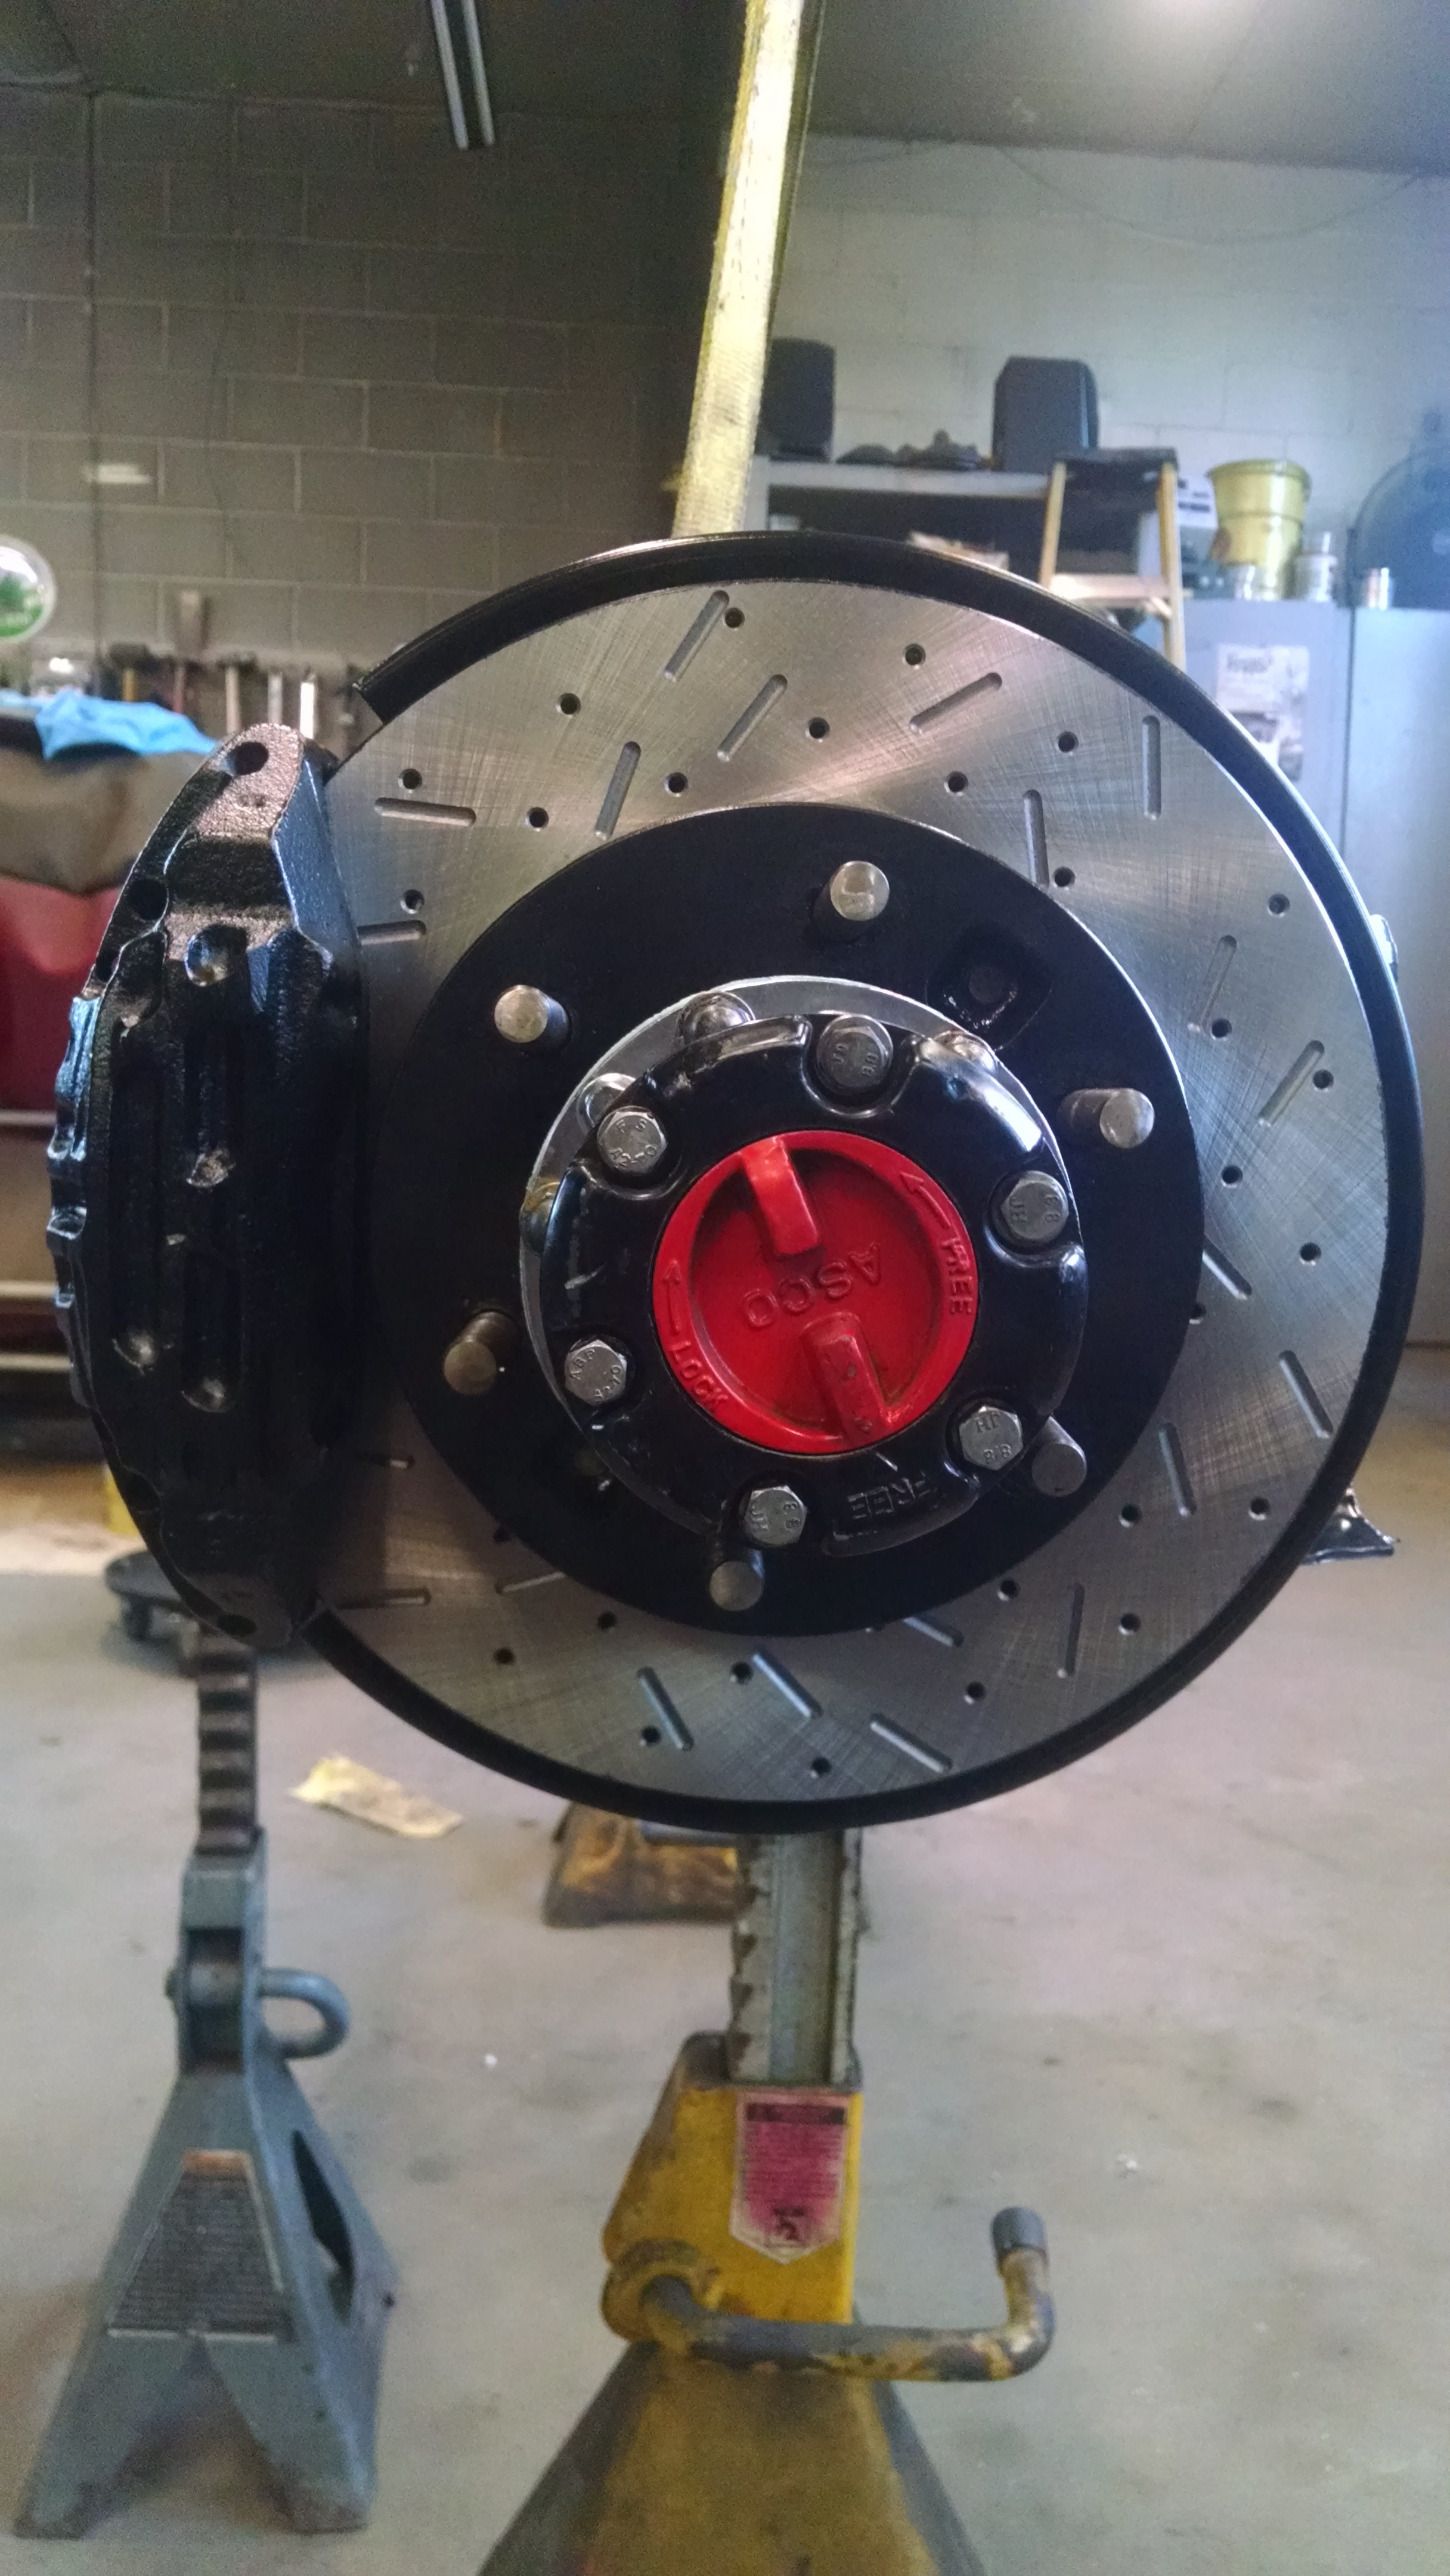 A lot more power need more brakes to slow it down.